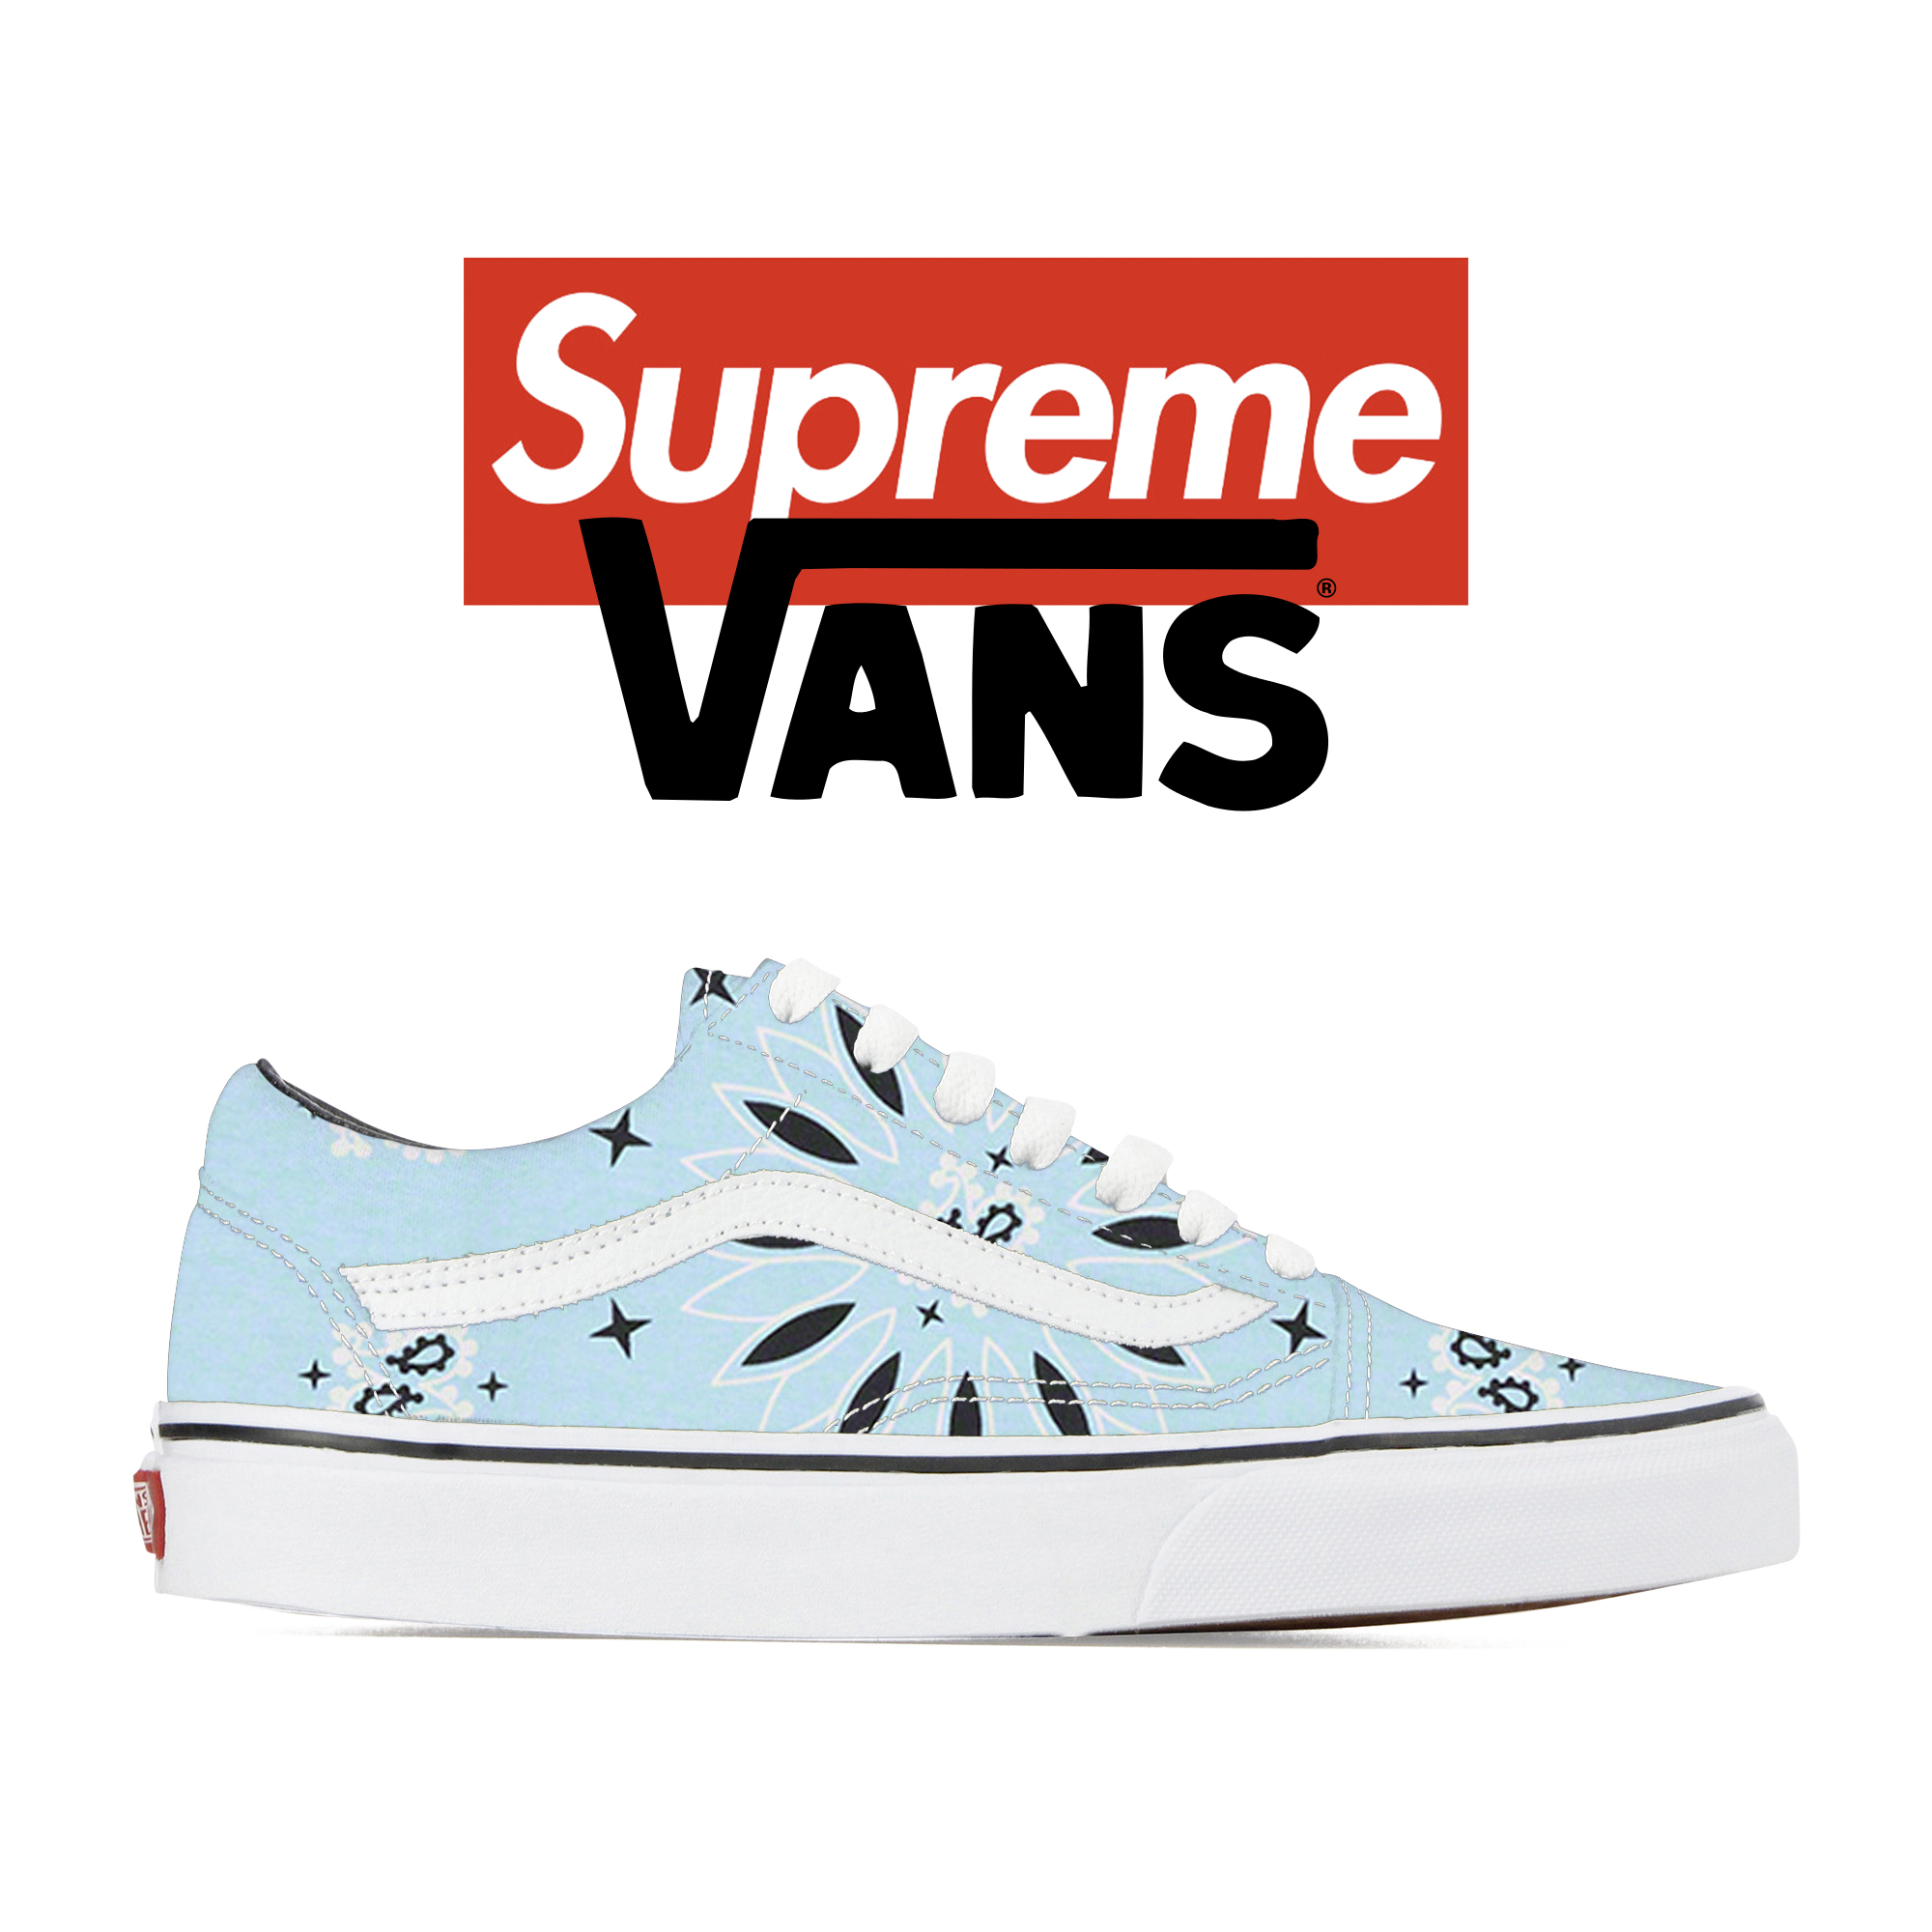 2021年 夏発売!SUPREME × VANS 2021 S/S (シュプリーム バンズ 2021年 春夏)